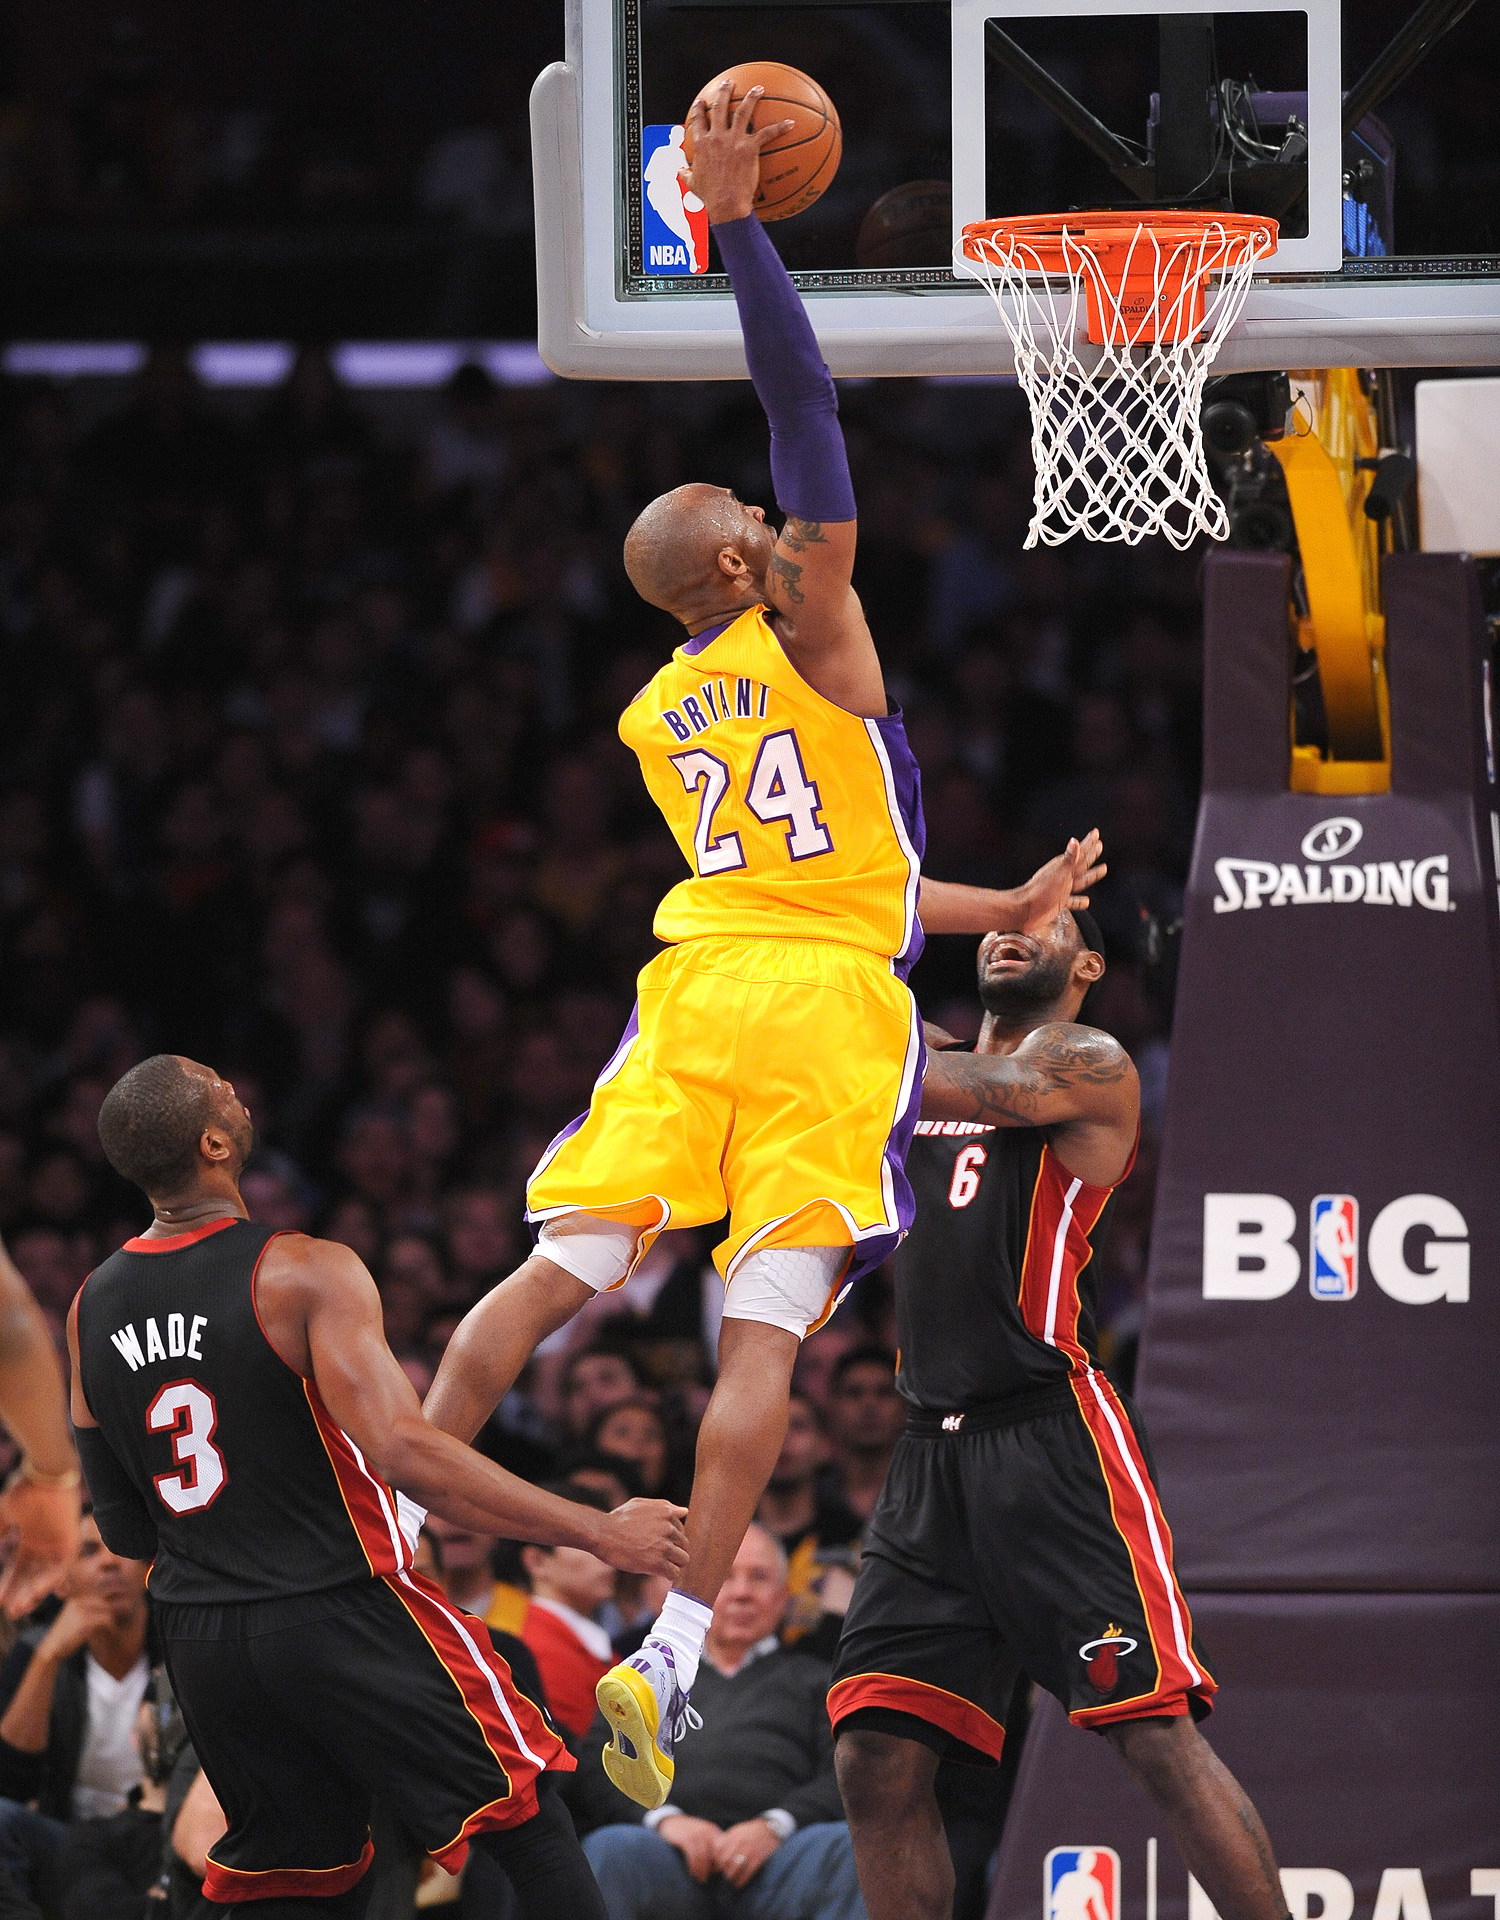 Kobe Bryant Wallpaper Hd Kobe Bryant Wallpaper Dunk 11 The Lock